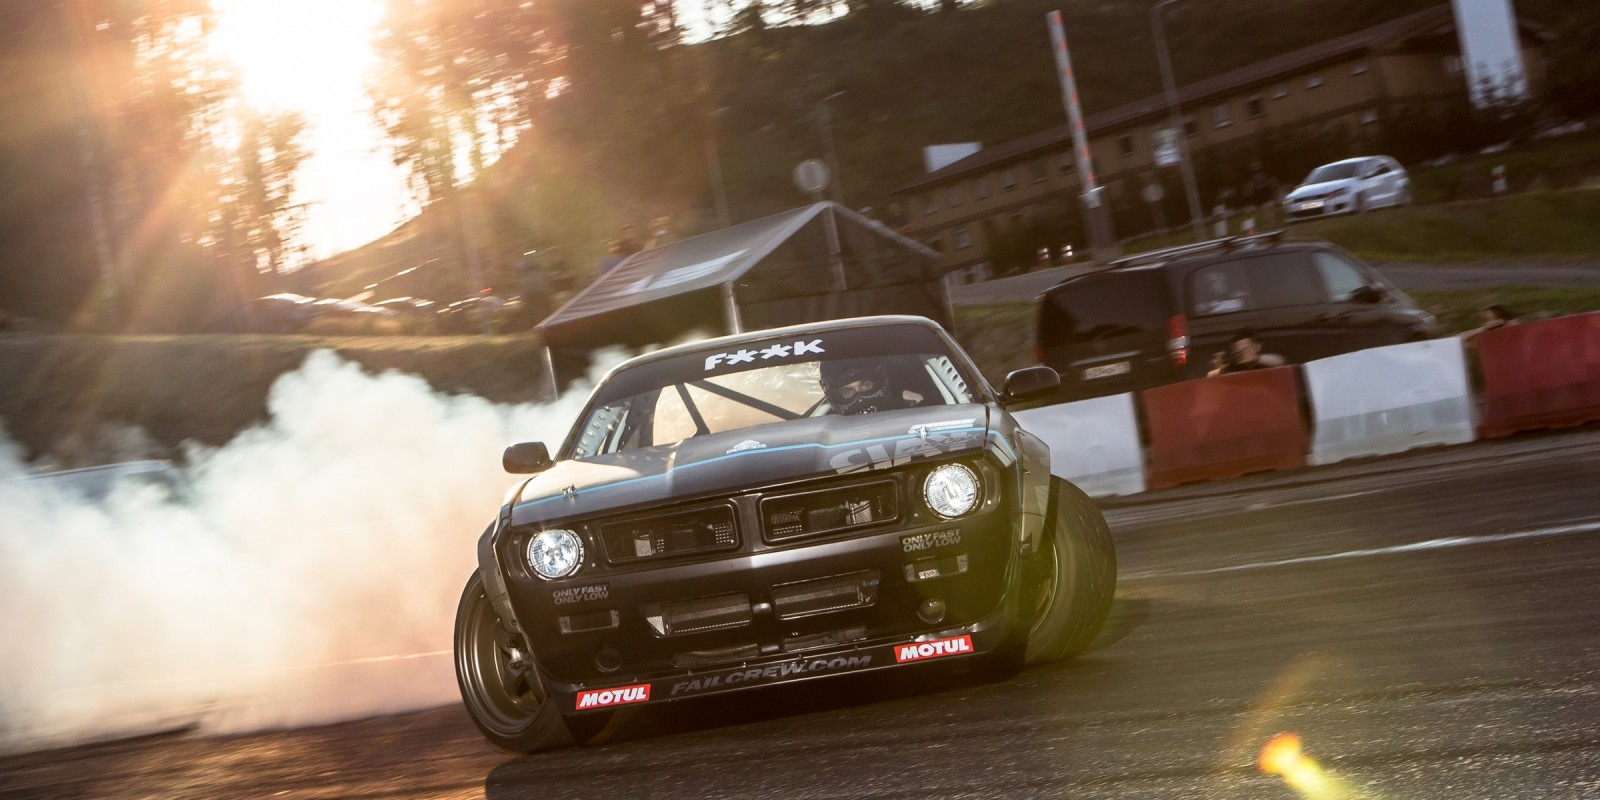 Images from Tsunami Picnic - drifting event in Saint Petersburg